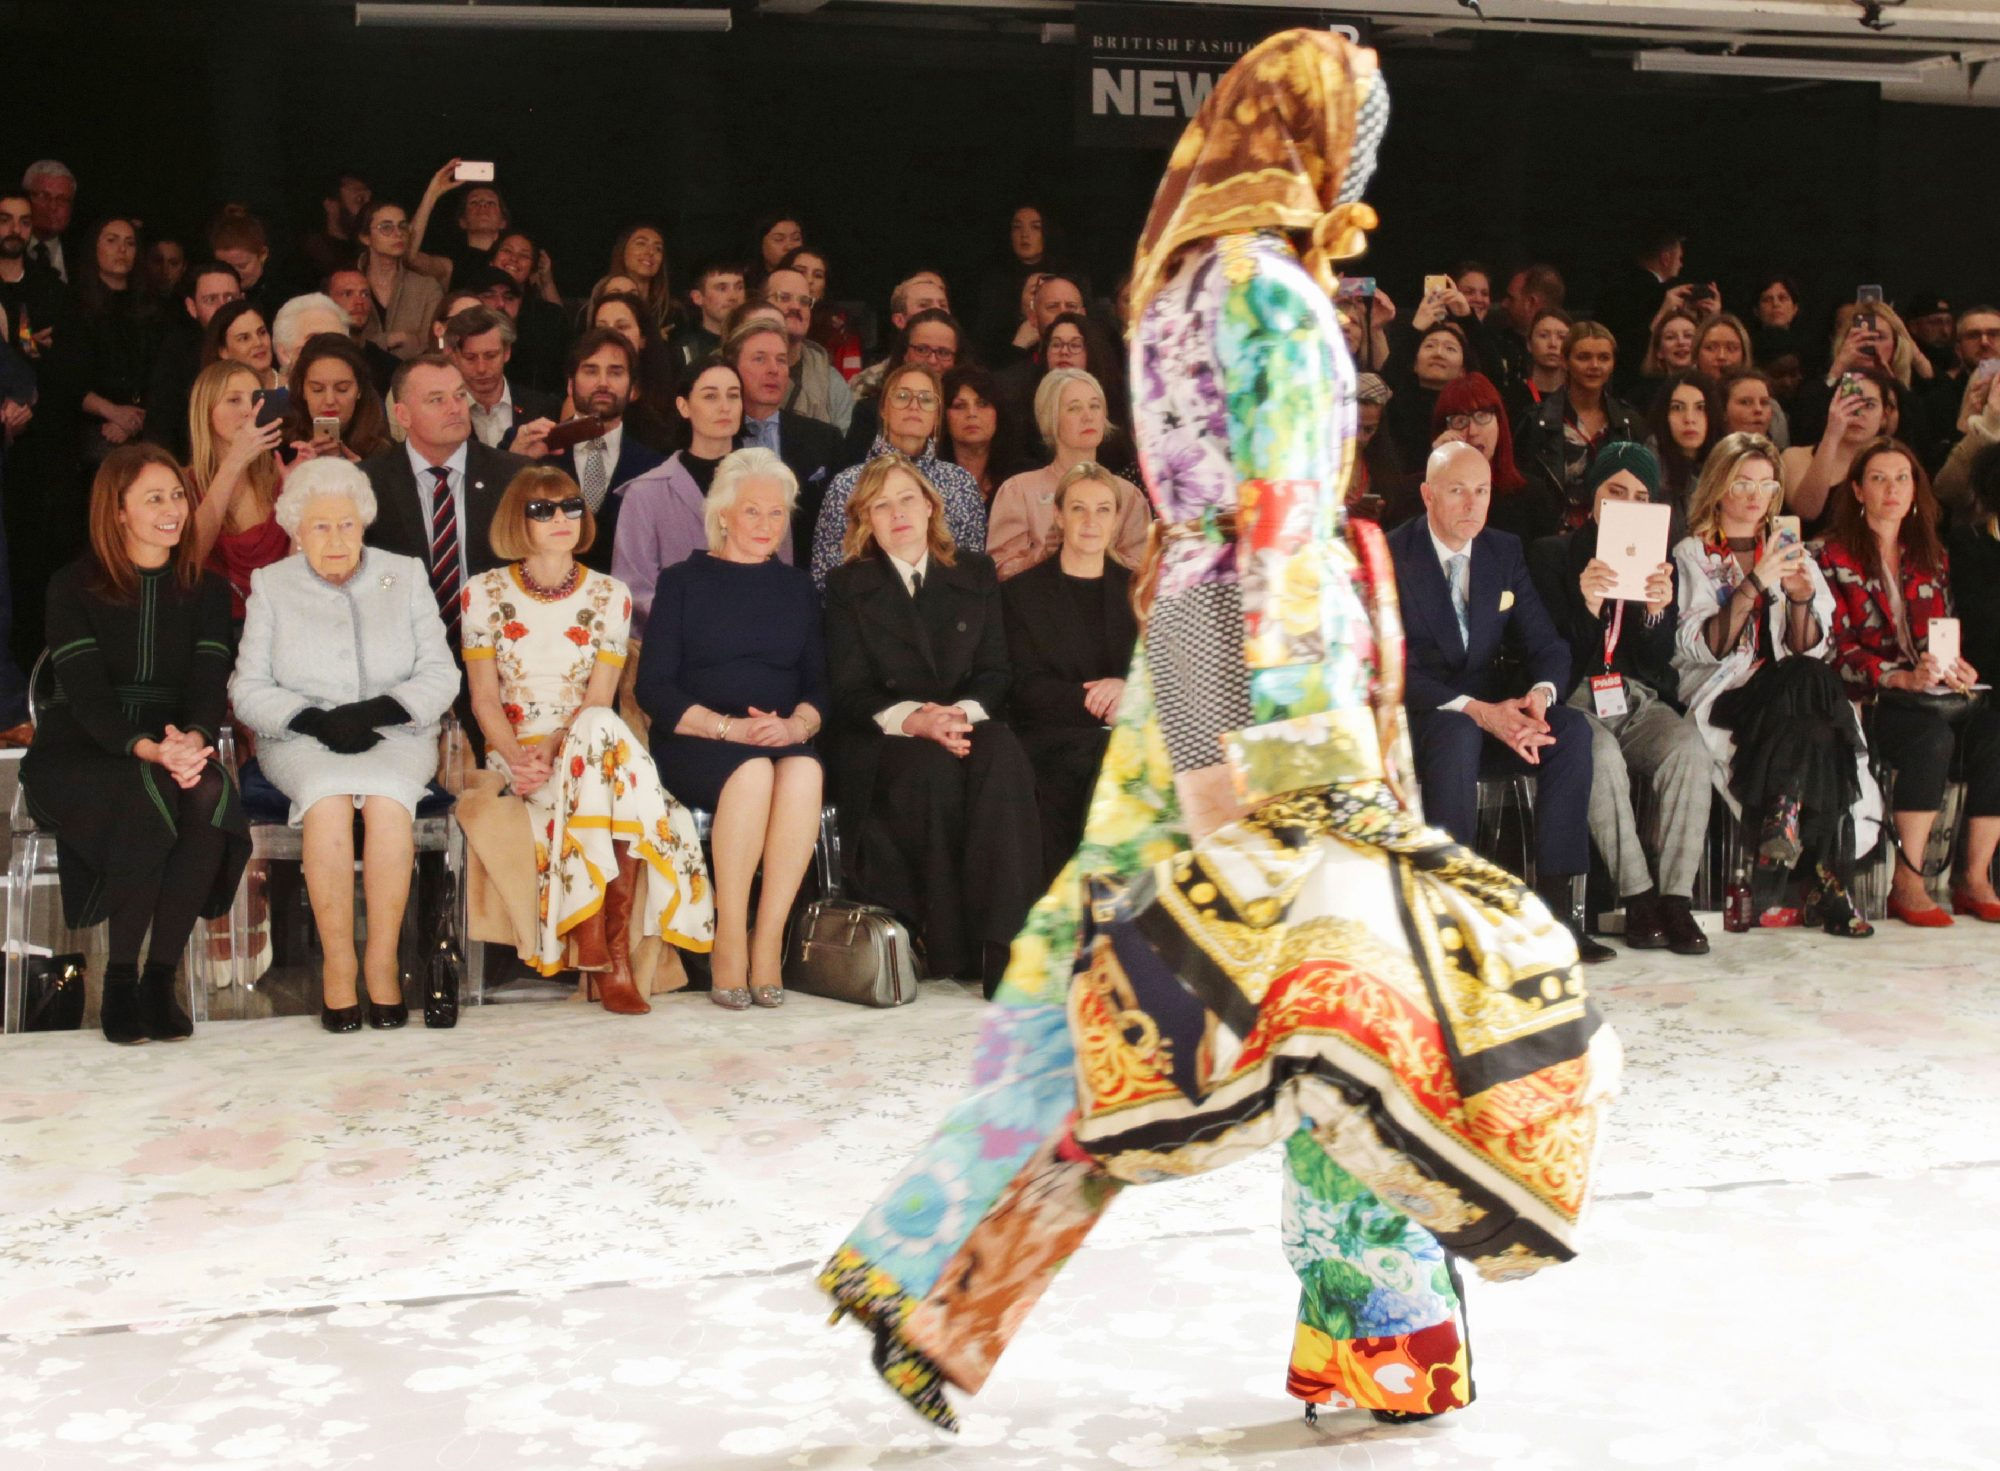 THE BIG BUZZ: NOW, THAT'S A FRONT ROW